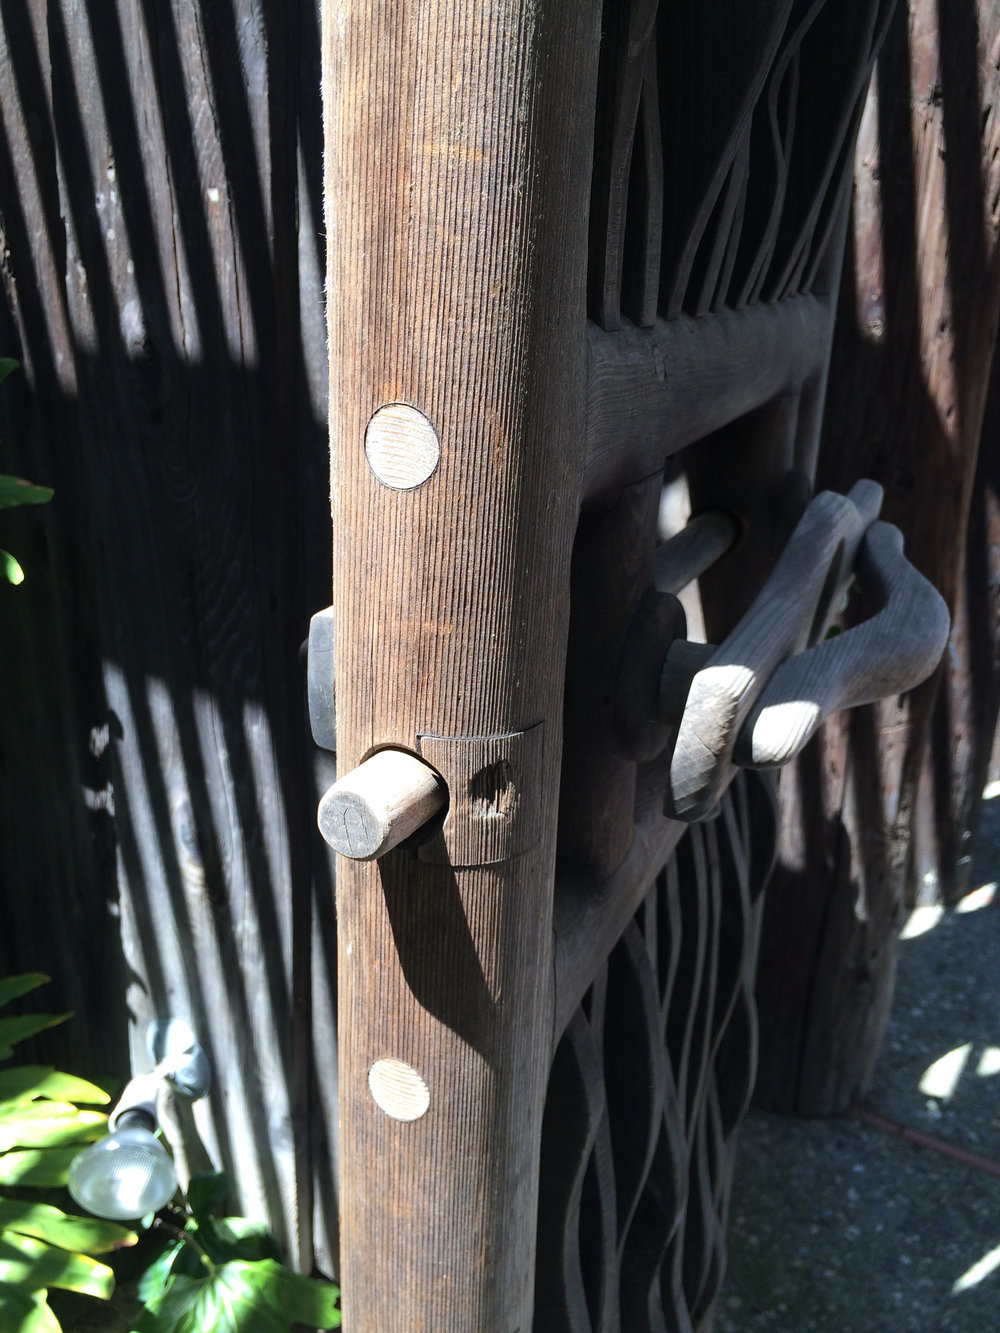 the ingenious latching mechanism. the gate is (I believe) redwood, and the pins are maple